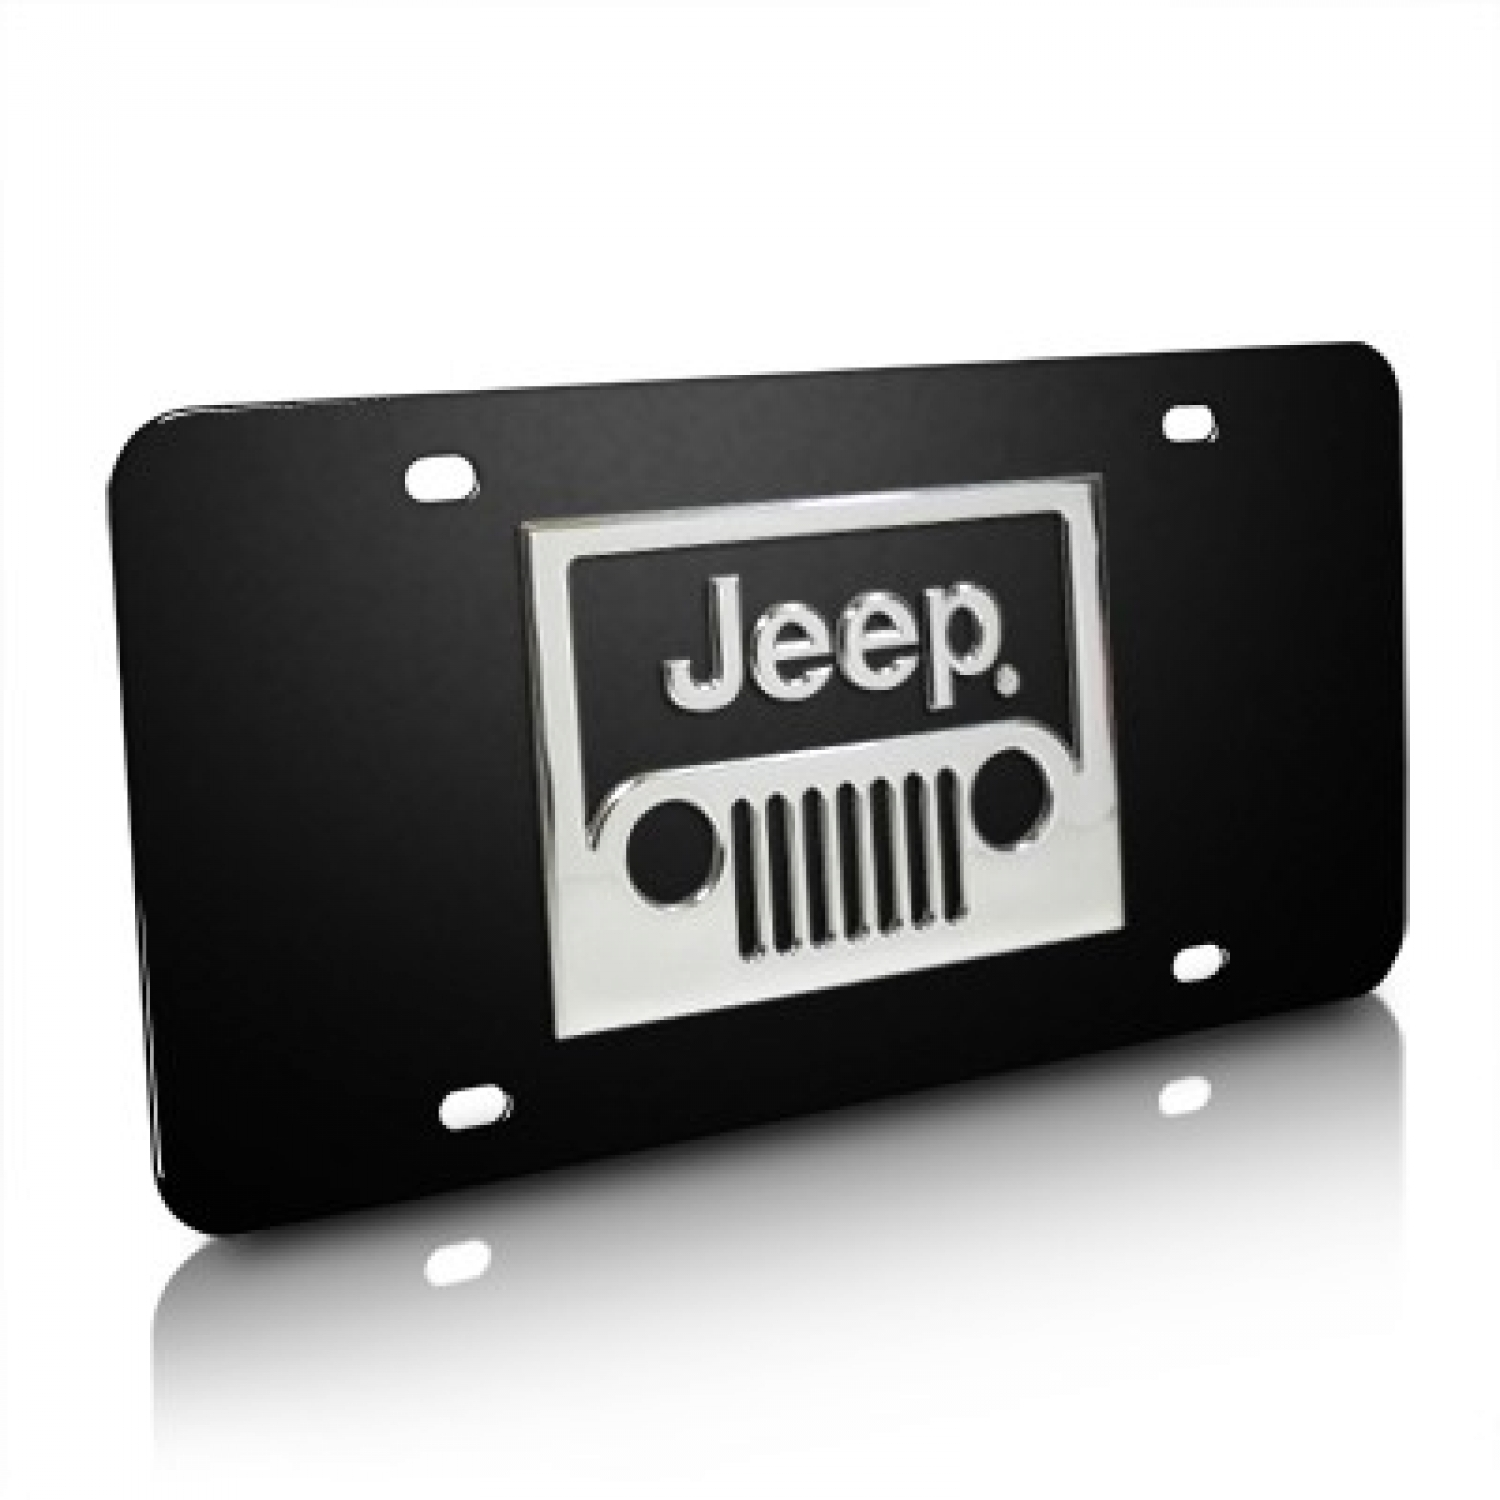 Jeep Grille 3D Logo Black Stainless Steel License Plate